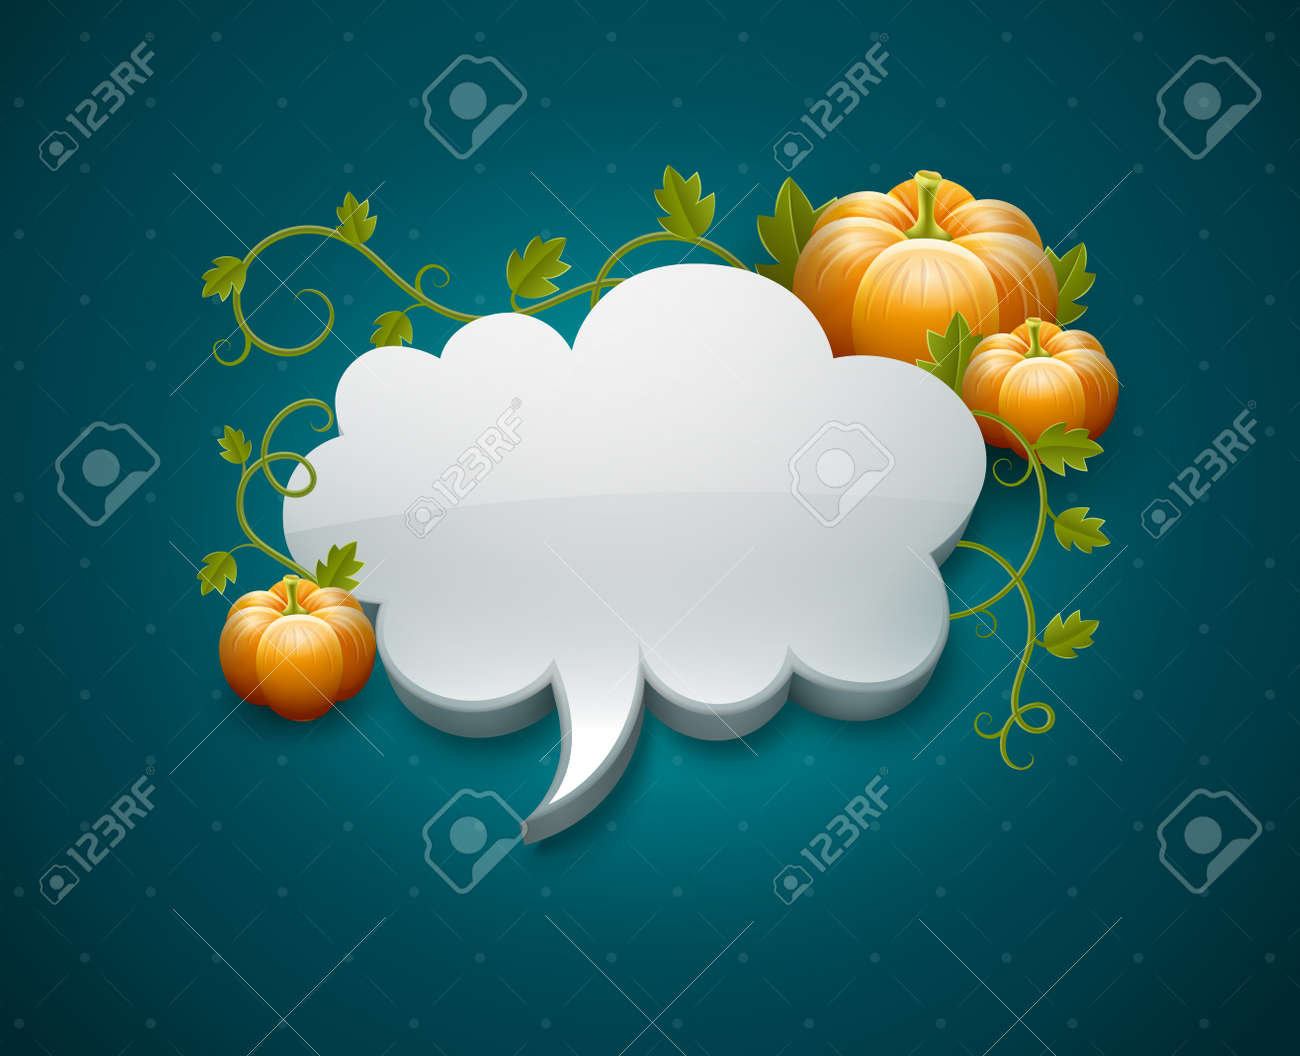 Thanksgiving day card template with pumpkins and cloud for message EPS10. Transparent objects used for shadows and lights drawing. Gradient mesh. Stock Vector - 15683586